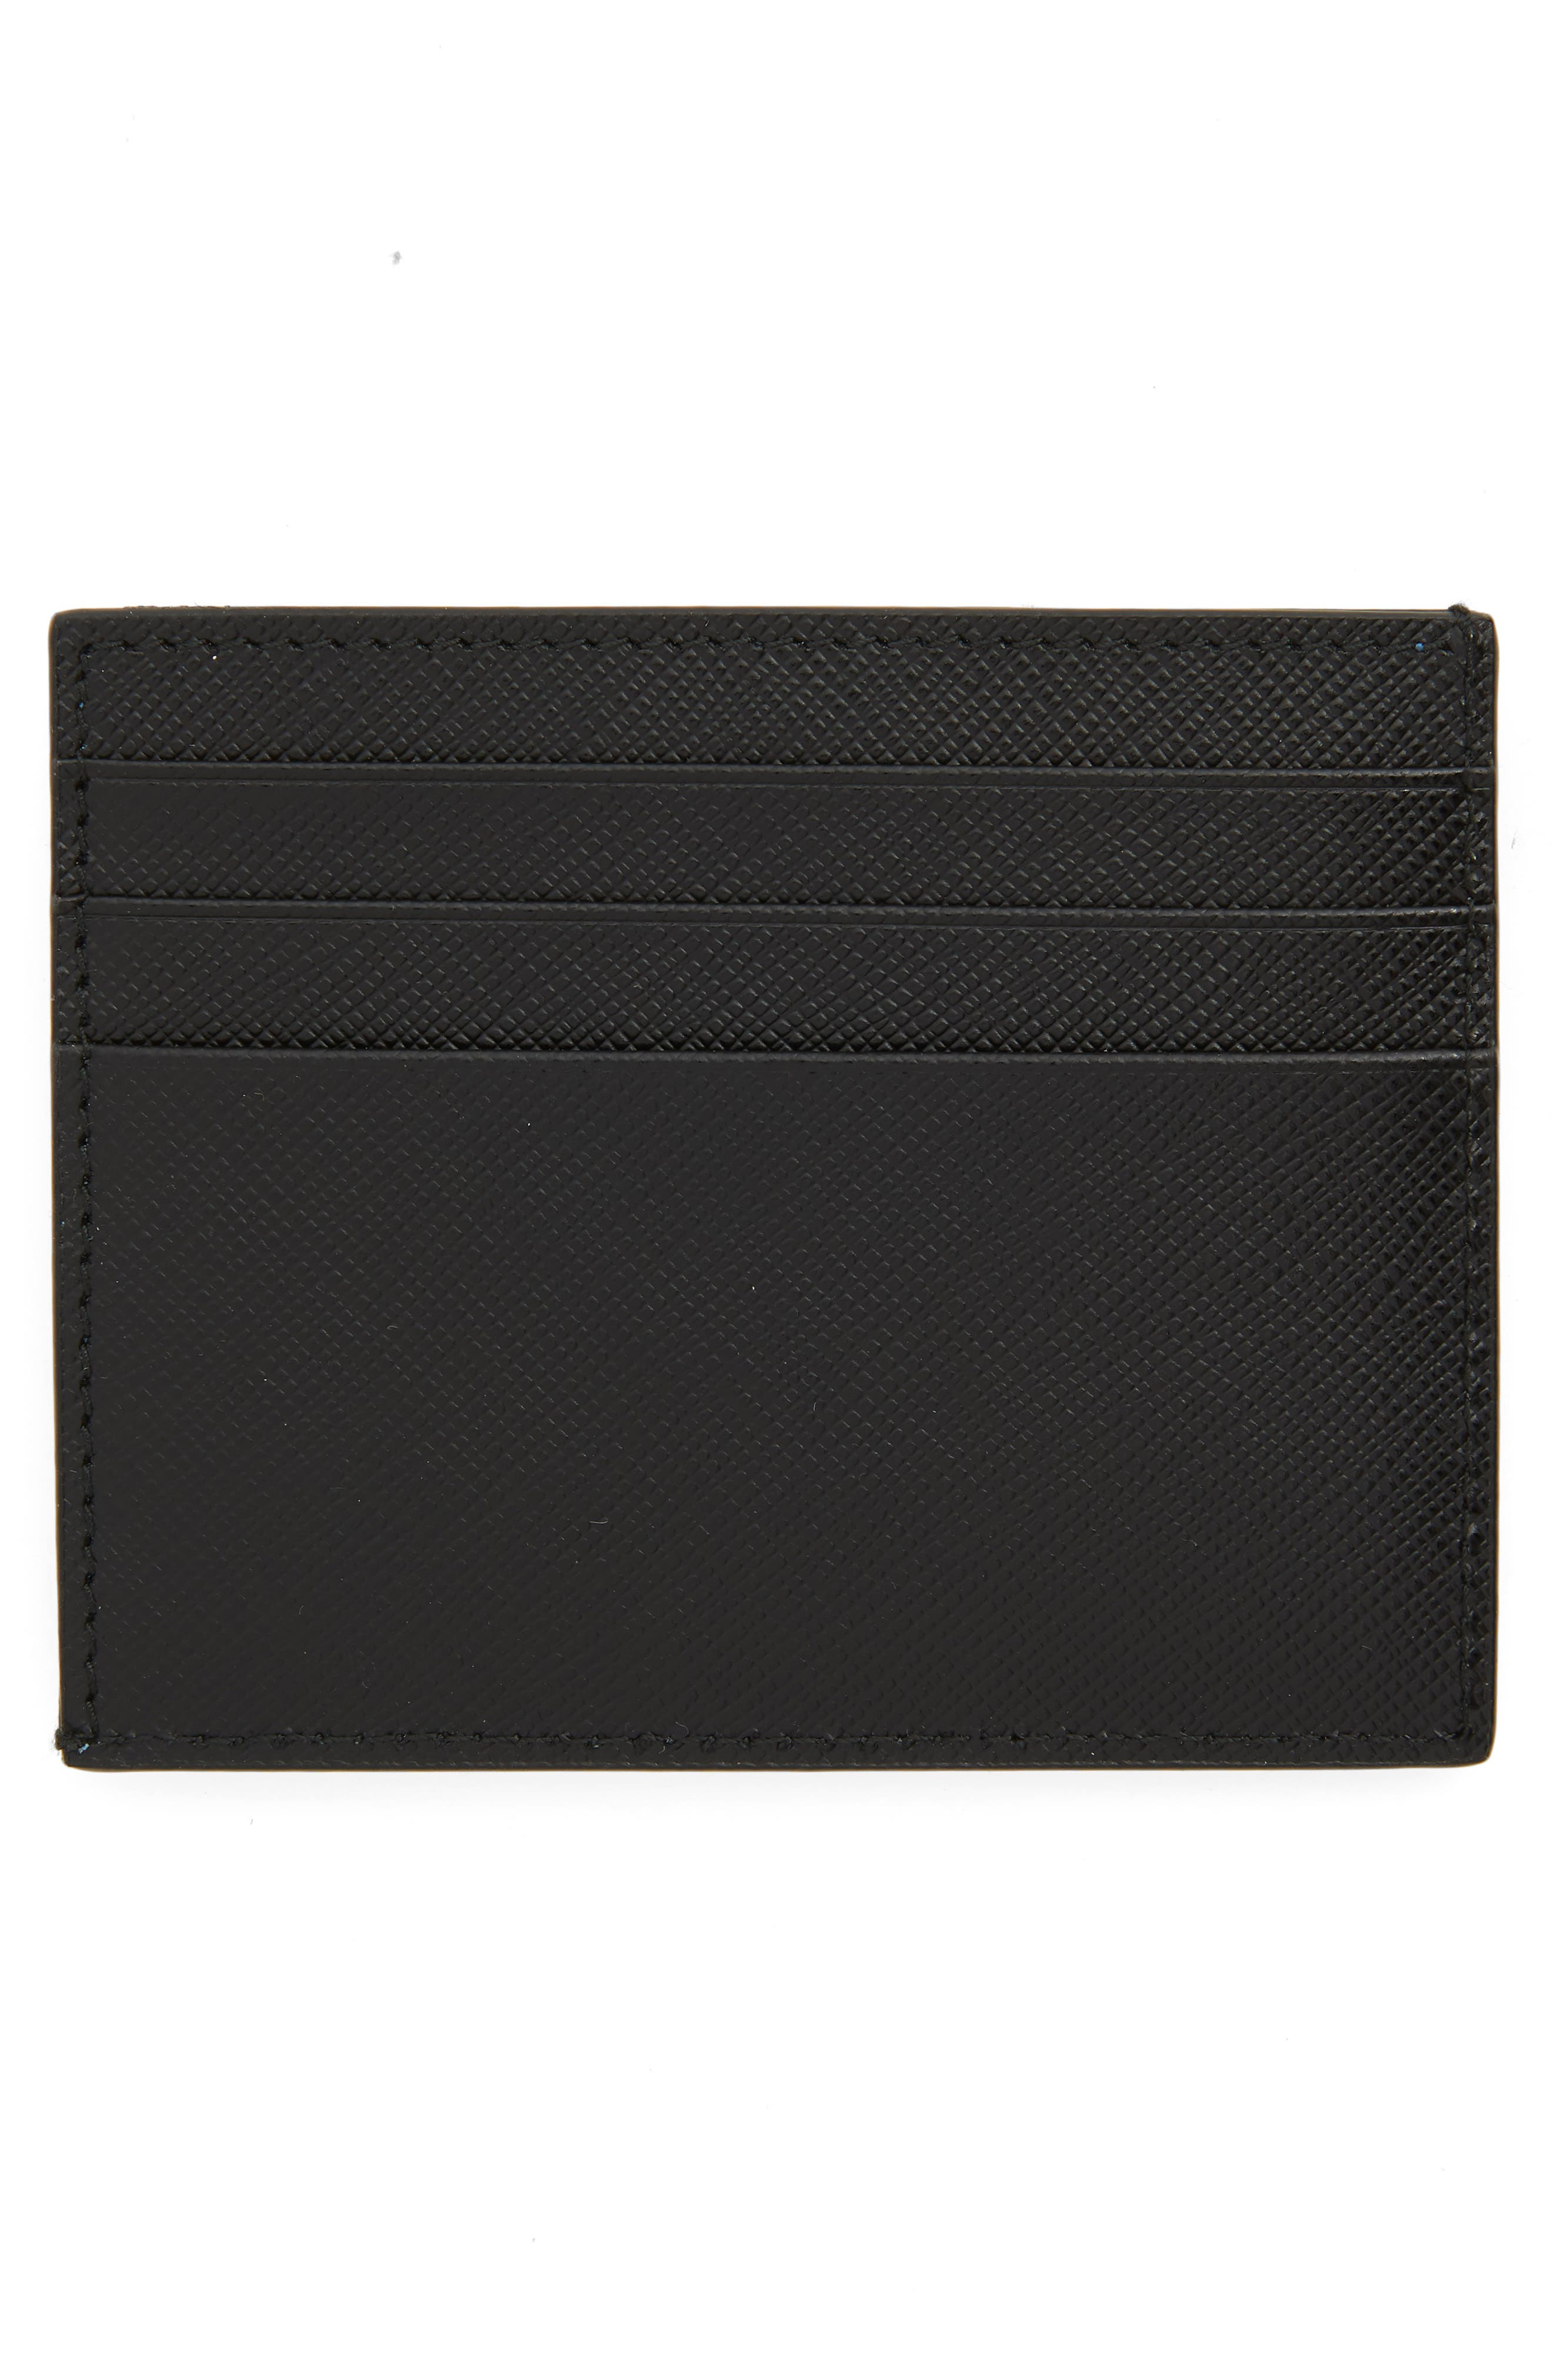 PRADA,                             Saffiano Leather Patch Card Case,                             Alternate thumbnail 2, color,                             001